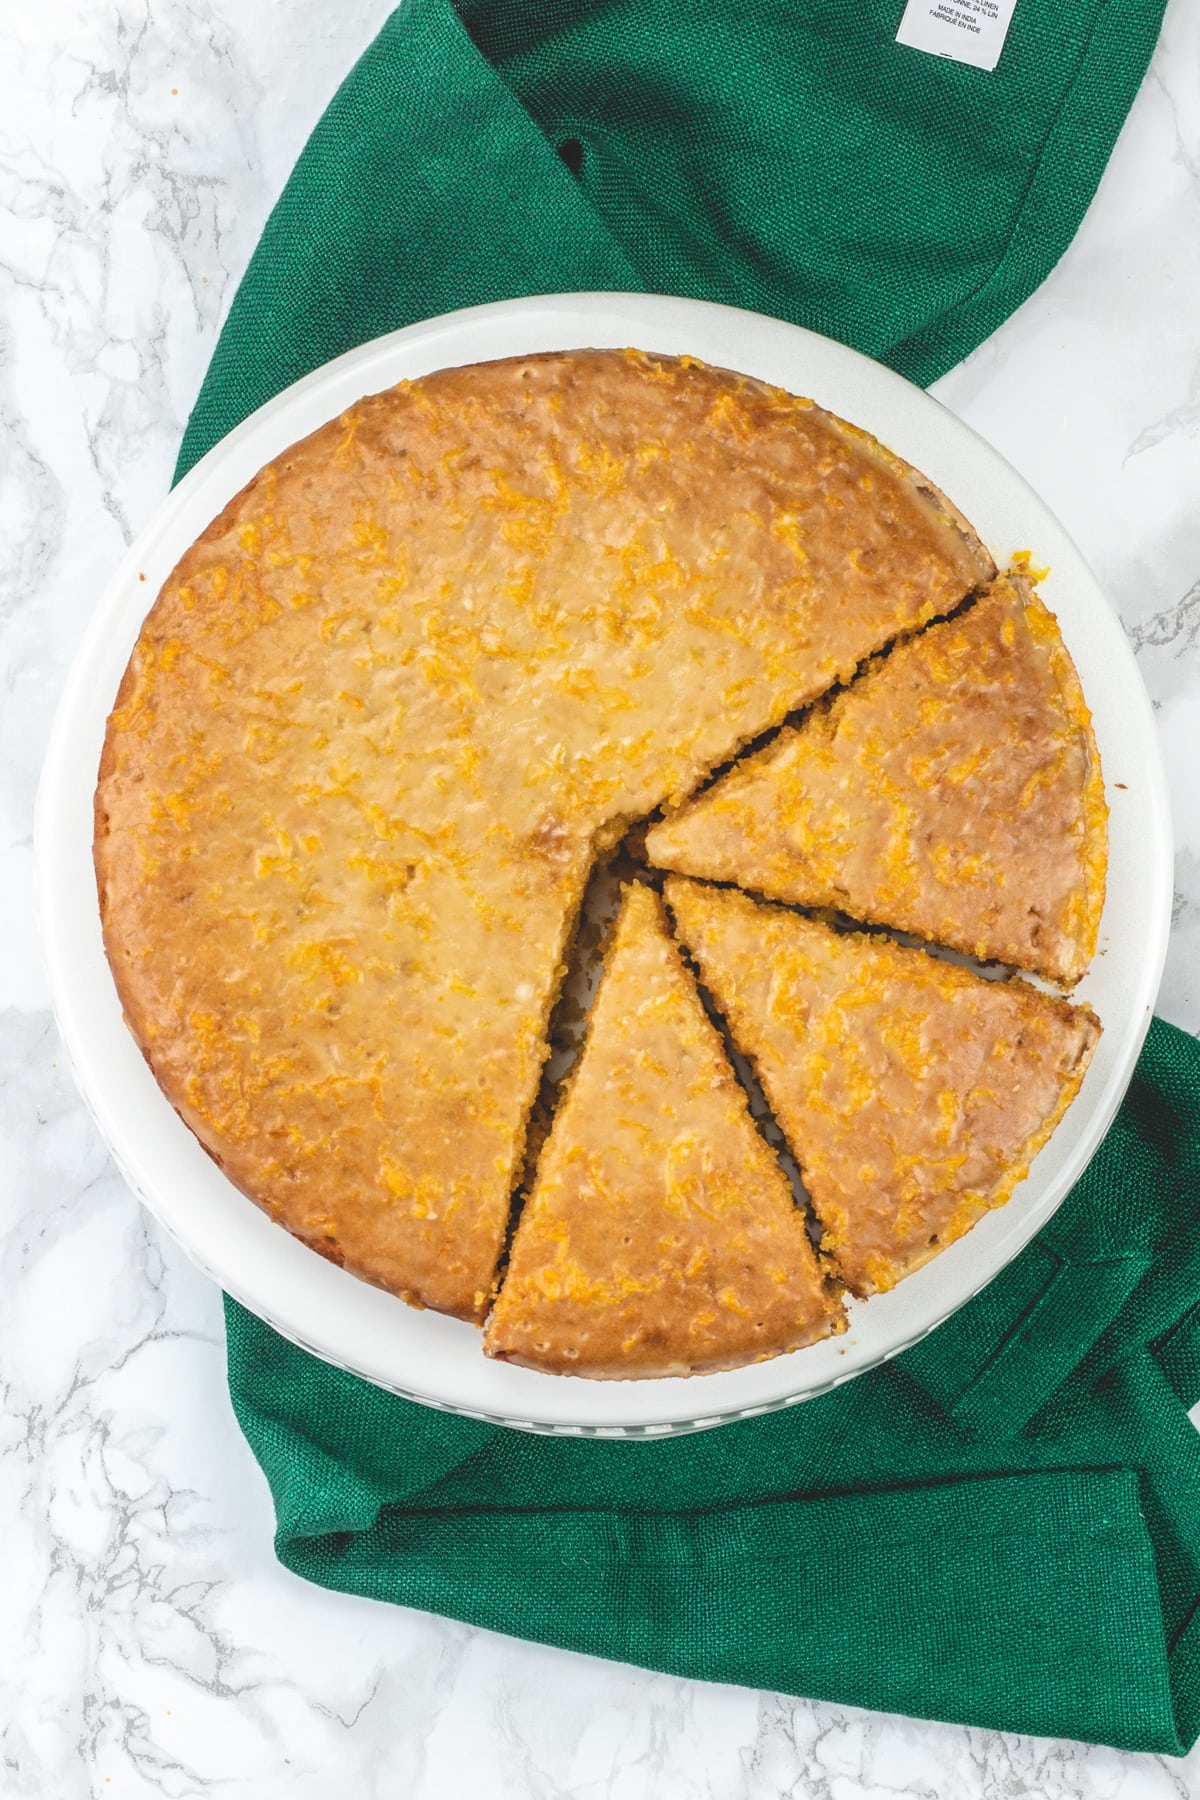 Top view of eggless orange cake on the cake stand with green napkin.